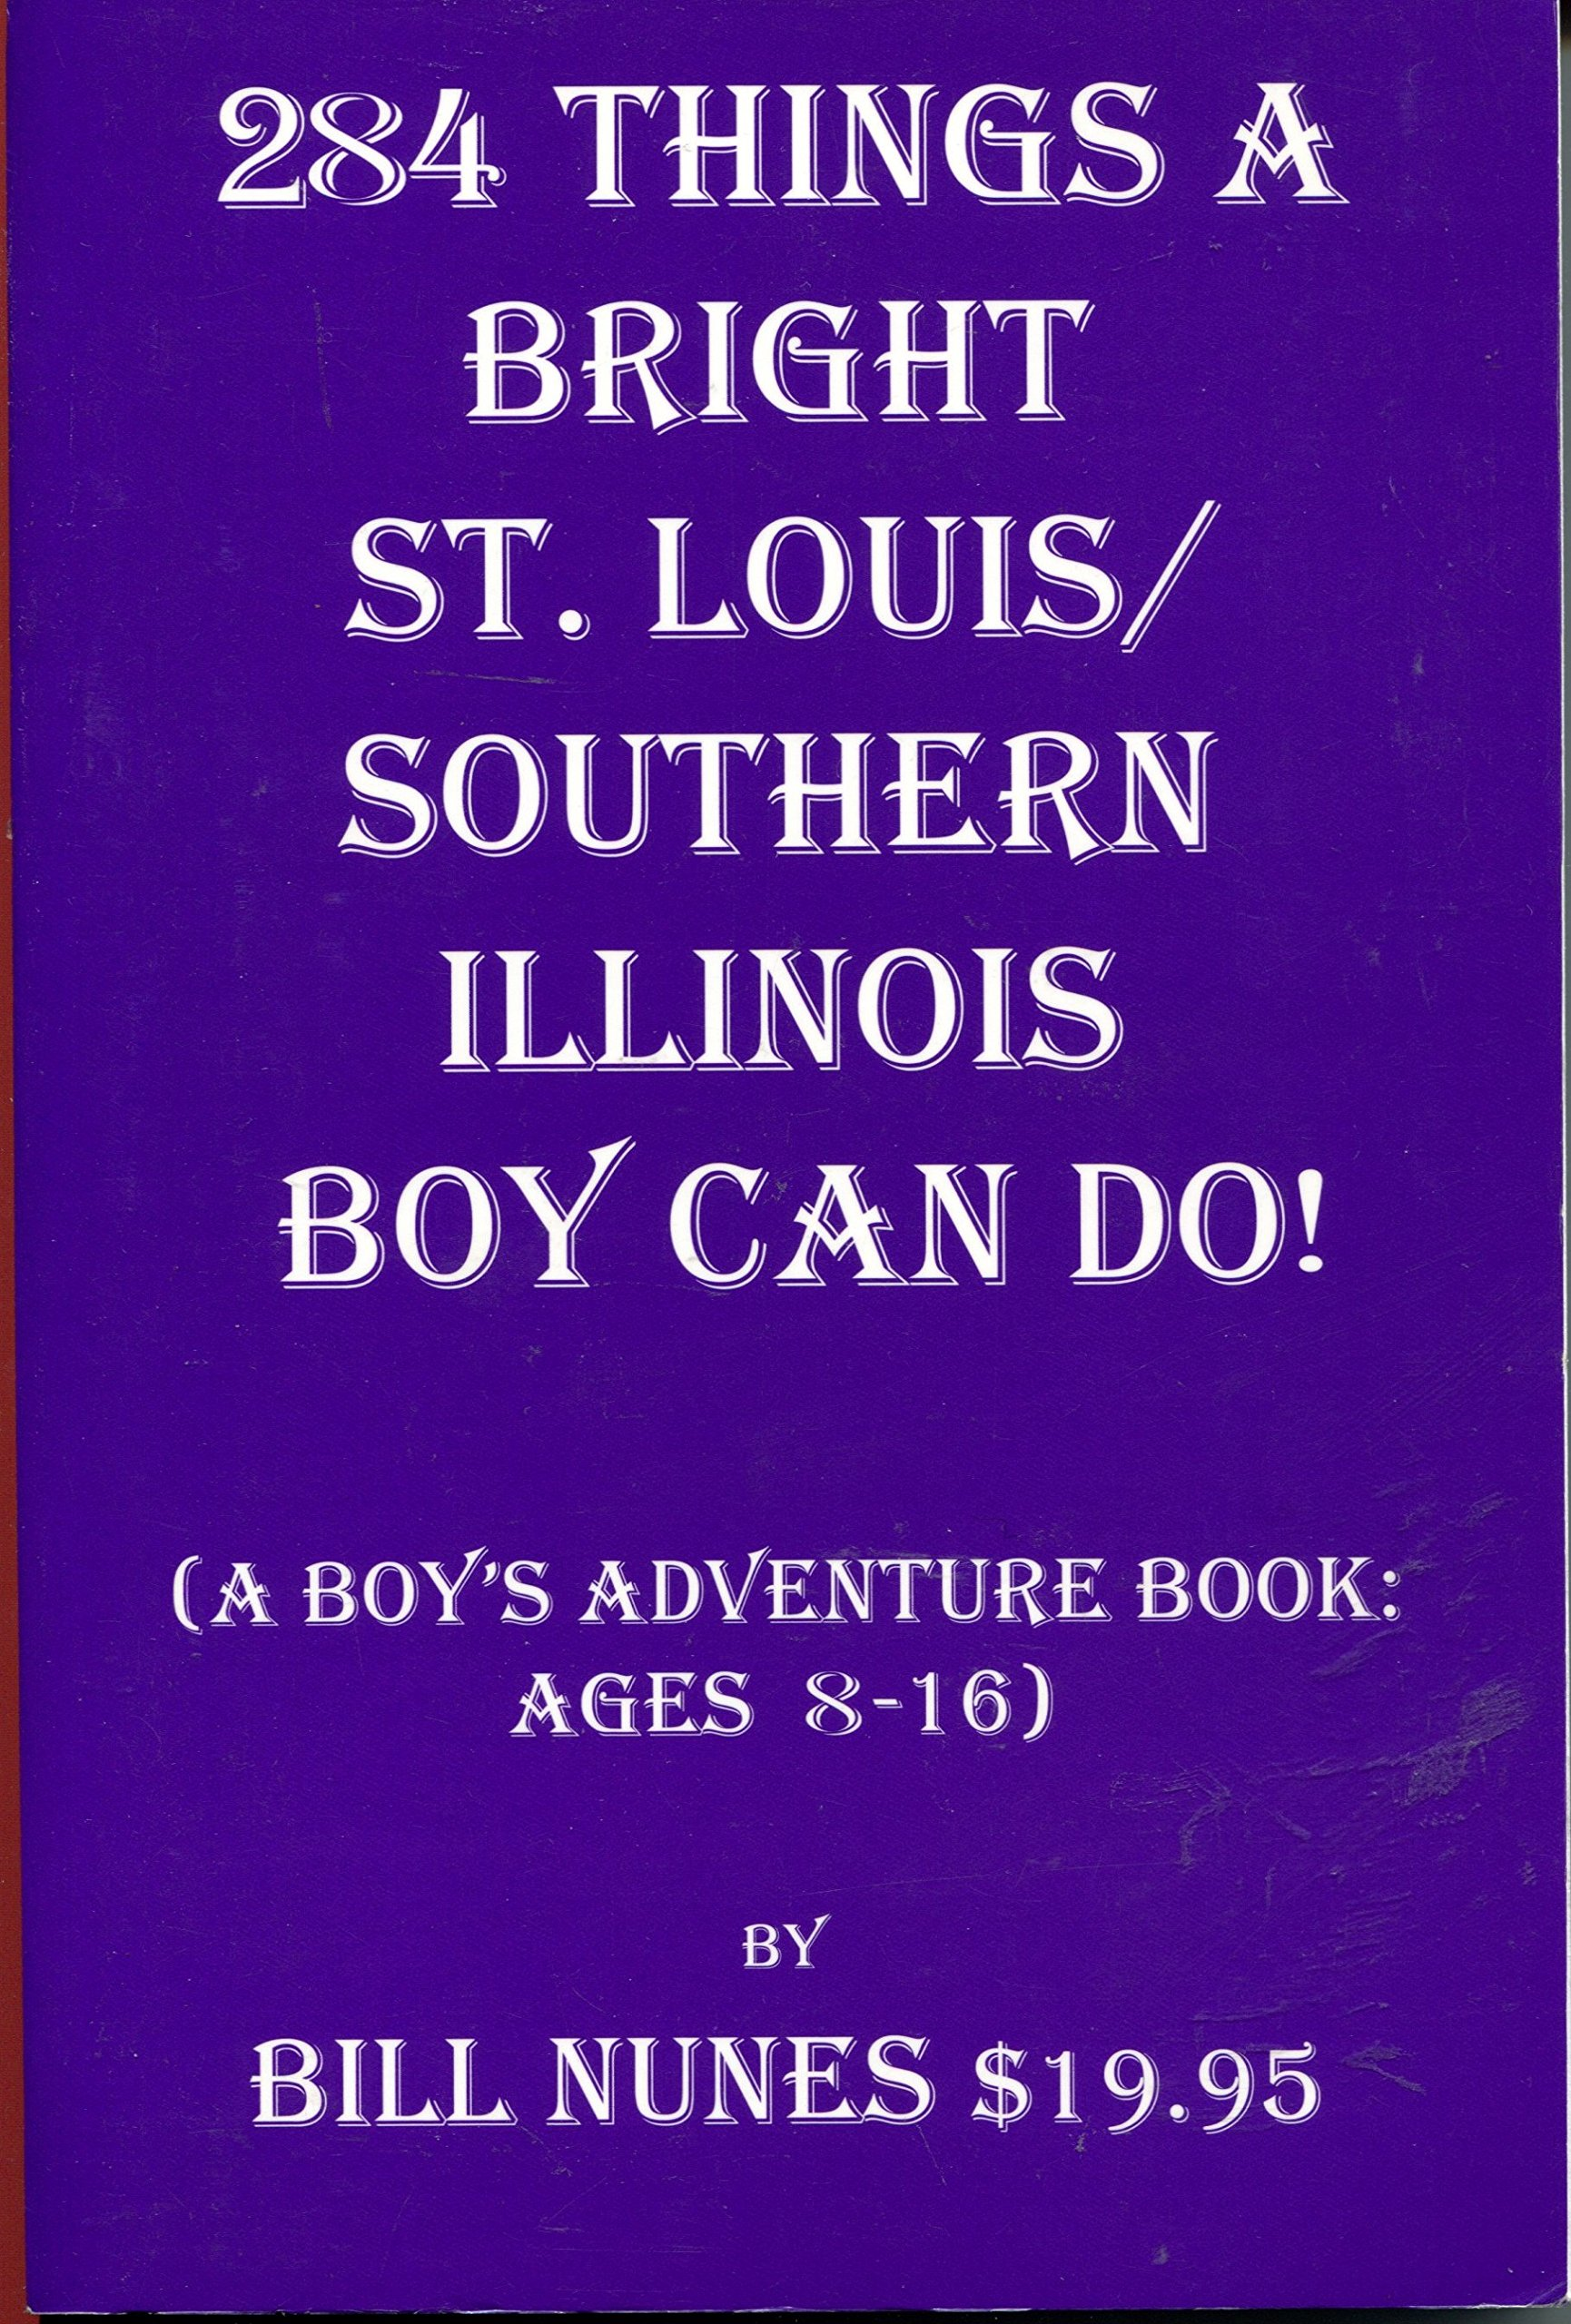 Download 284 Things a Bright St. Louis/Southern Illinois Boy Can Do! (A Boy's Adventure Book: Ages 8-16) pdf